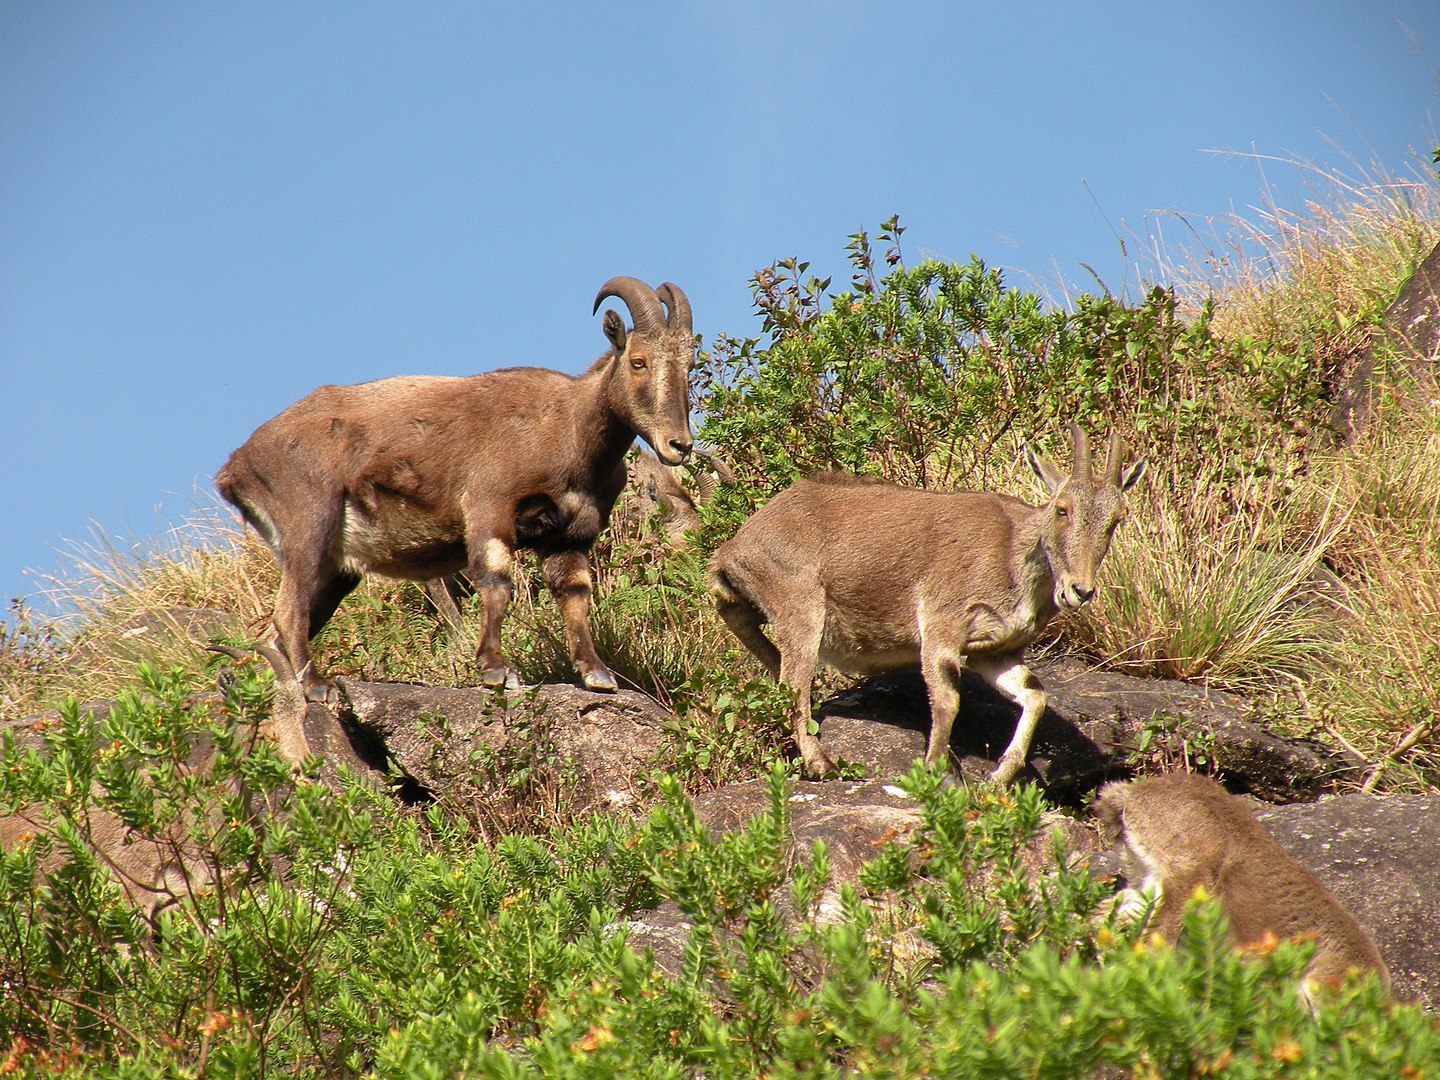 Three Nilgiri tahr (a type of mountain goat) descend a rocky slope covered in shrubs